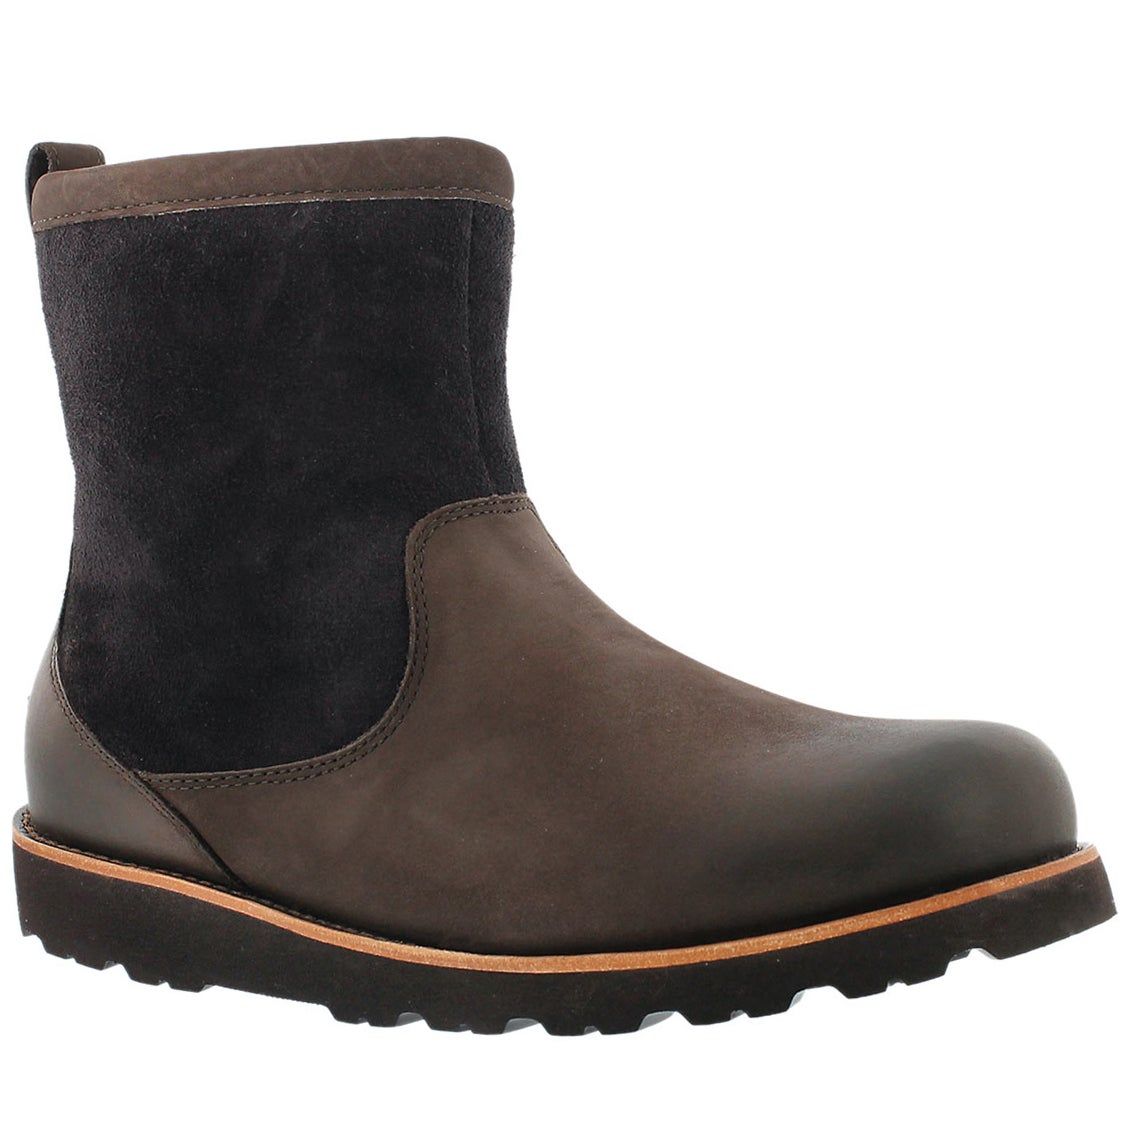 Mns Hendren TLstt wtpf lthr winter boot